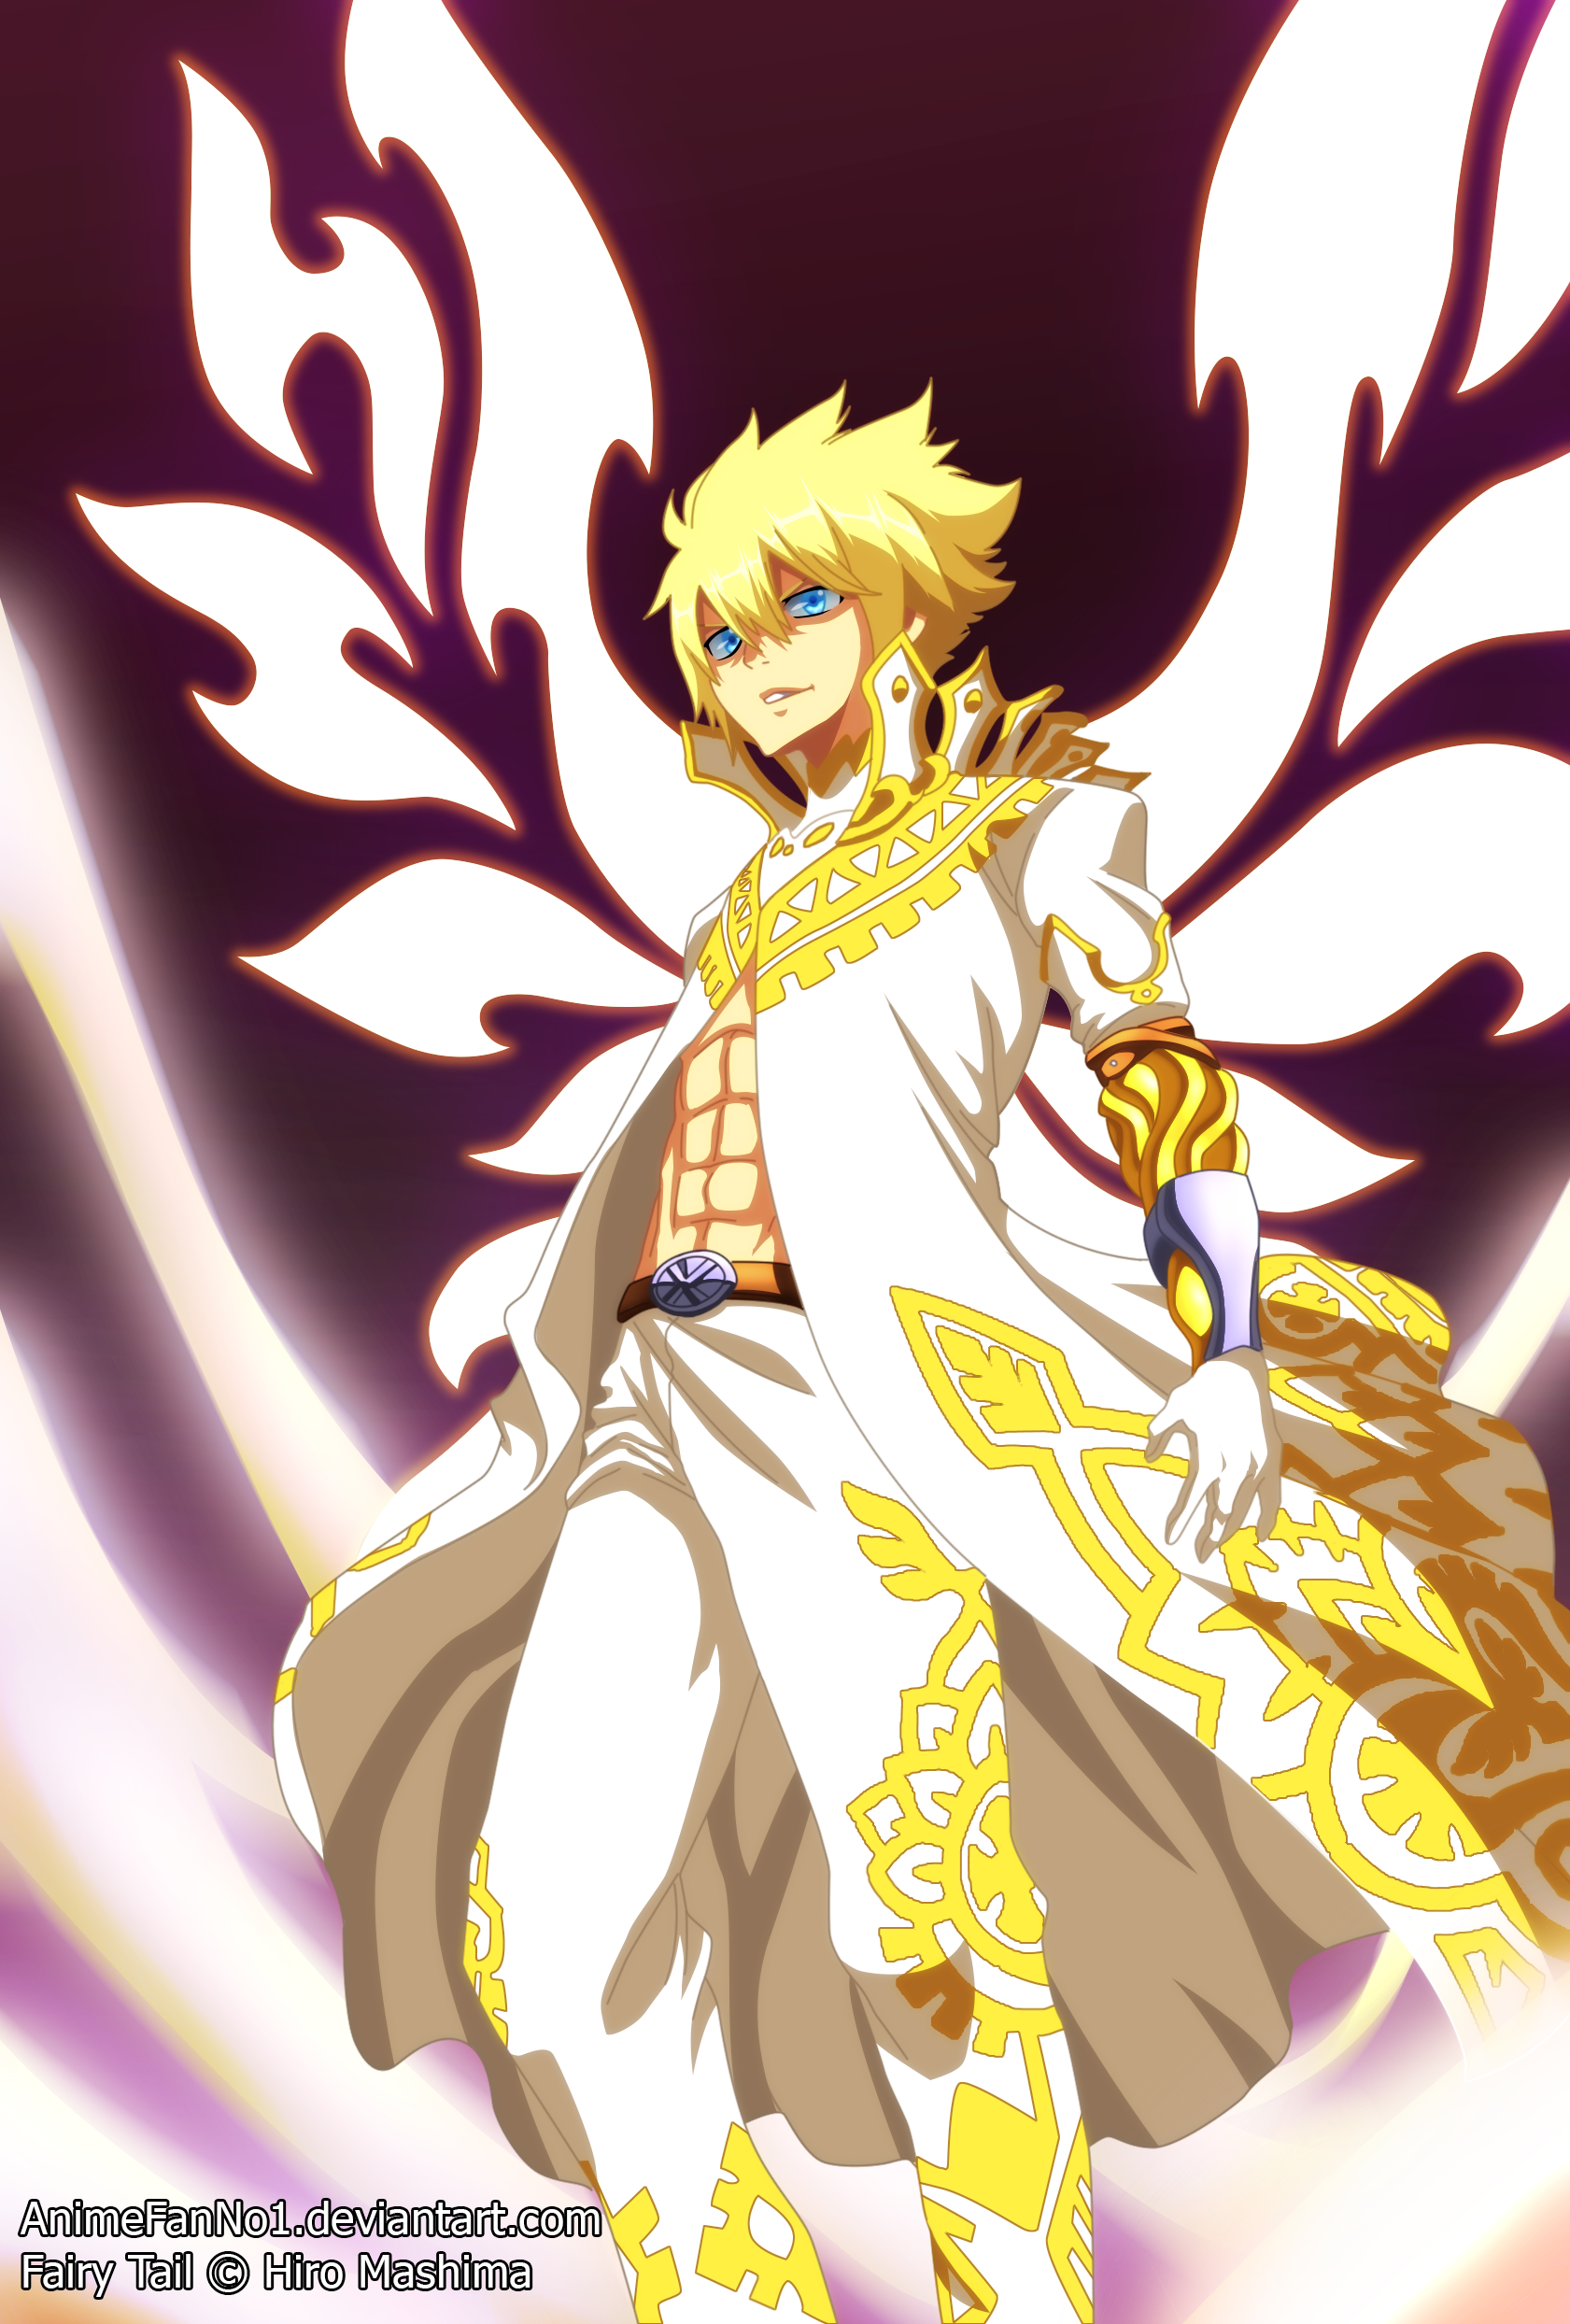 Fairy Tail Chapter 532 Zeref S God Form By Animefanno1 On Deviantart Fairy Tail Manga Zeref Fairy Tail Fairy Tail Anime